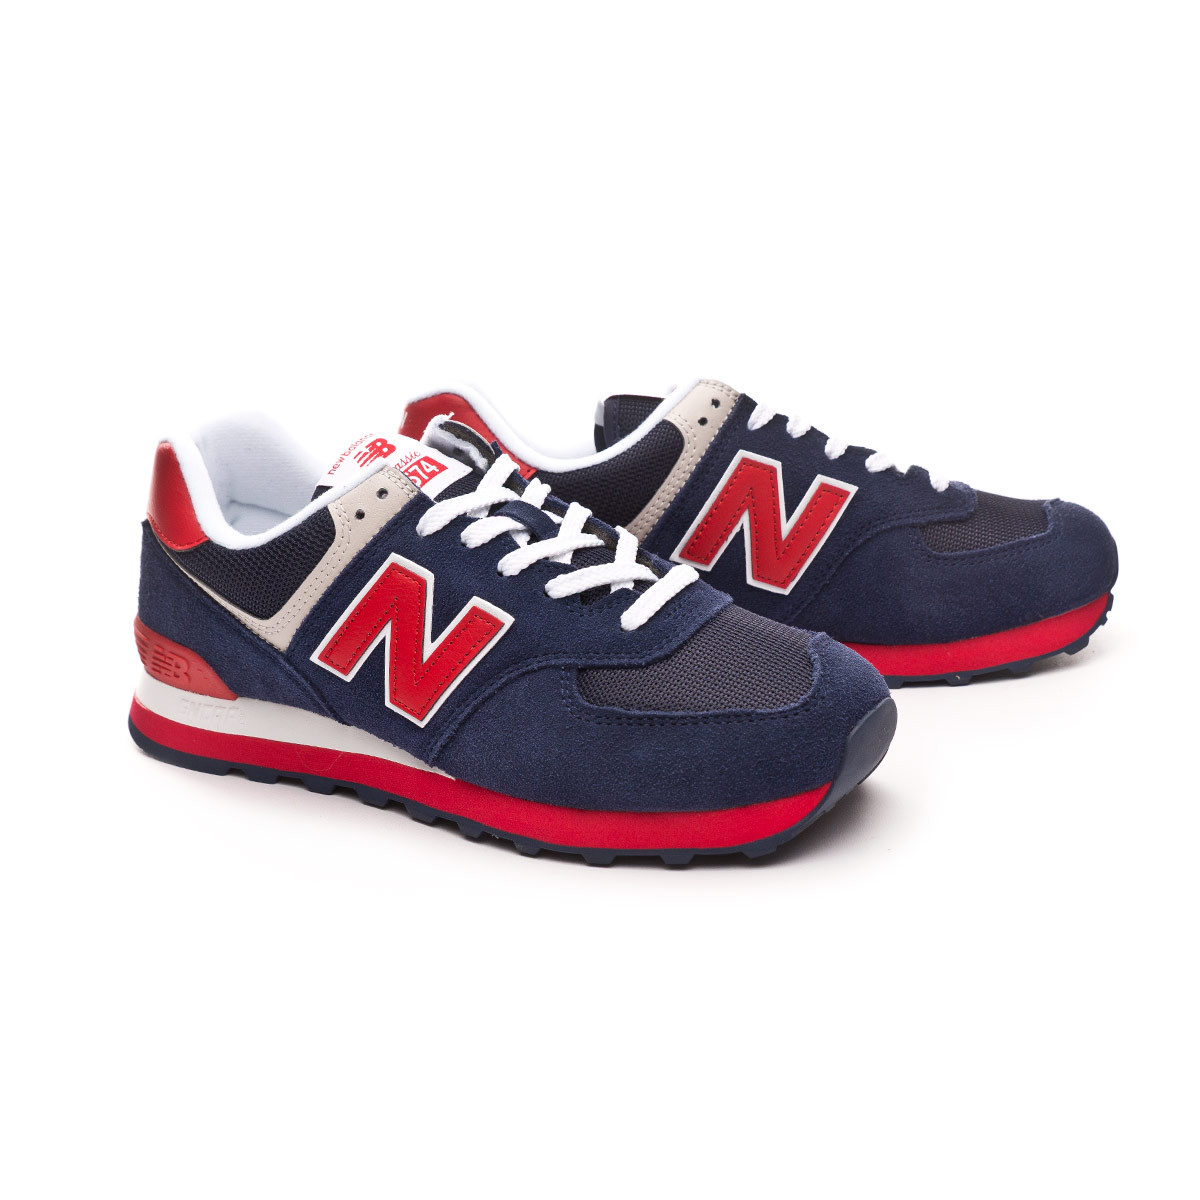 2de65b42a Trainers New Balance 574 Pigment - Football store Fútbol Emotion